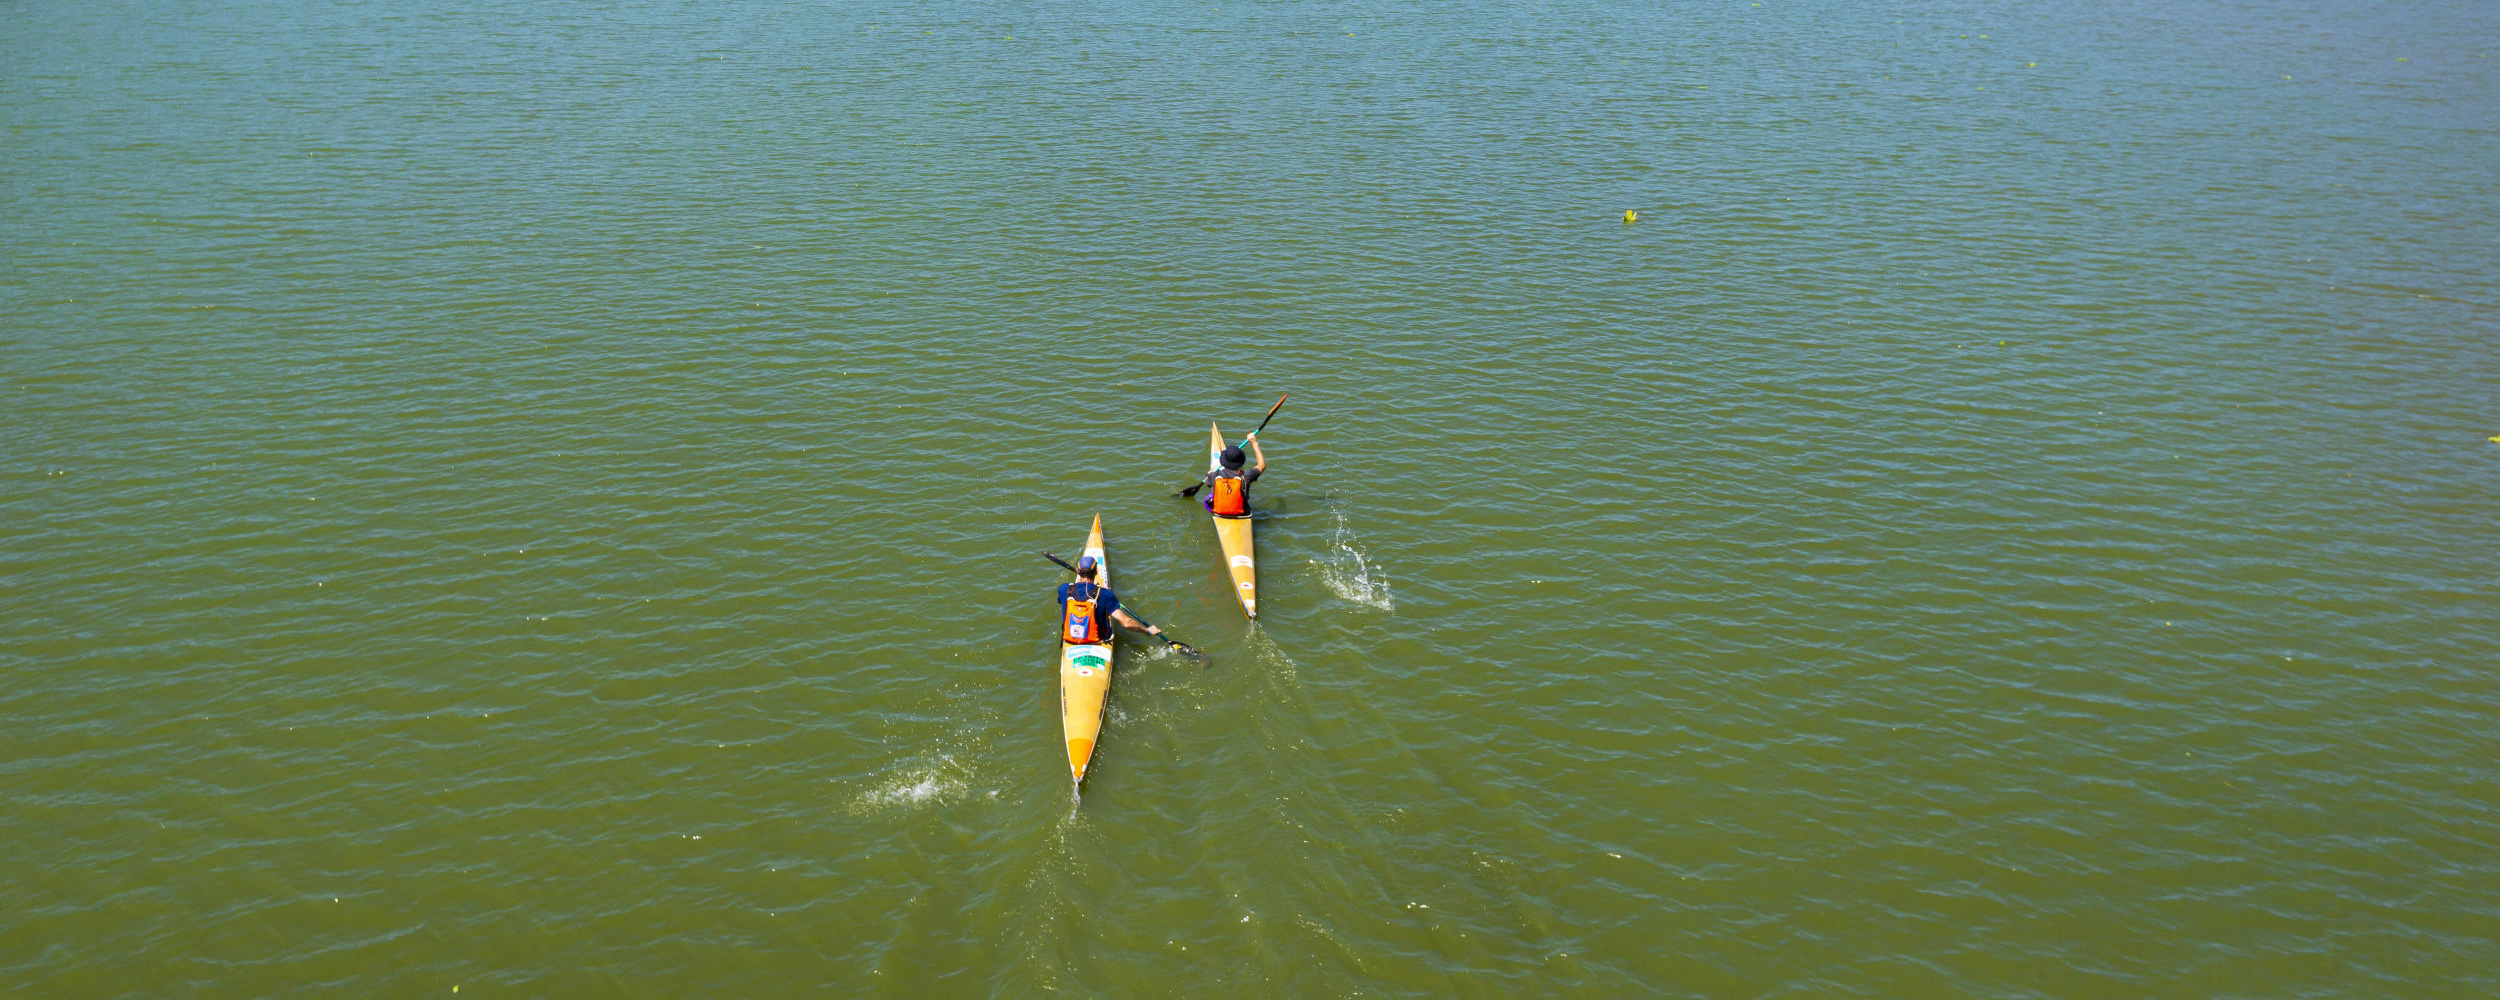 IMPORTANT POSITIVES FROM 2021 DUSI